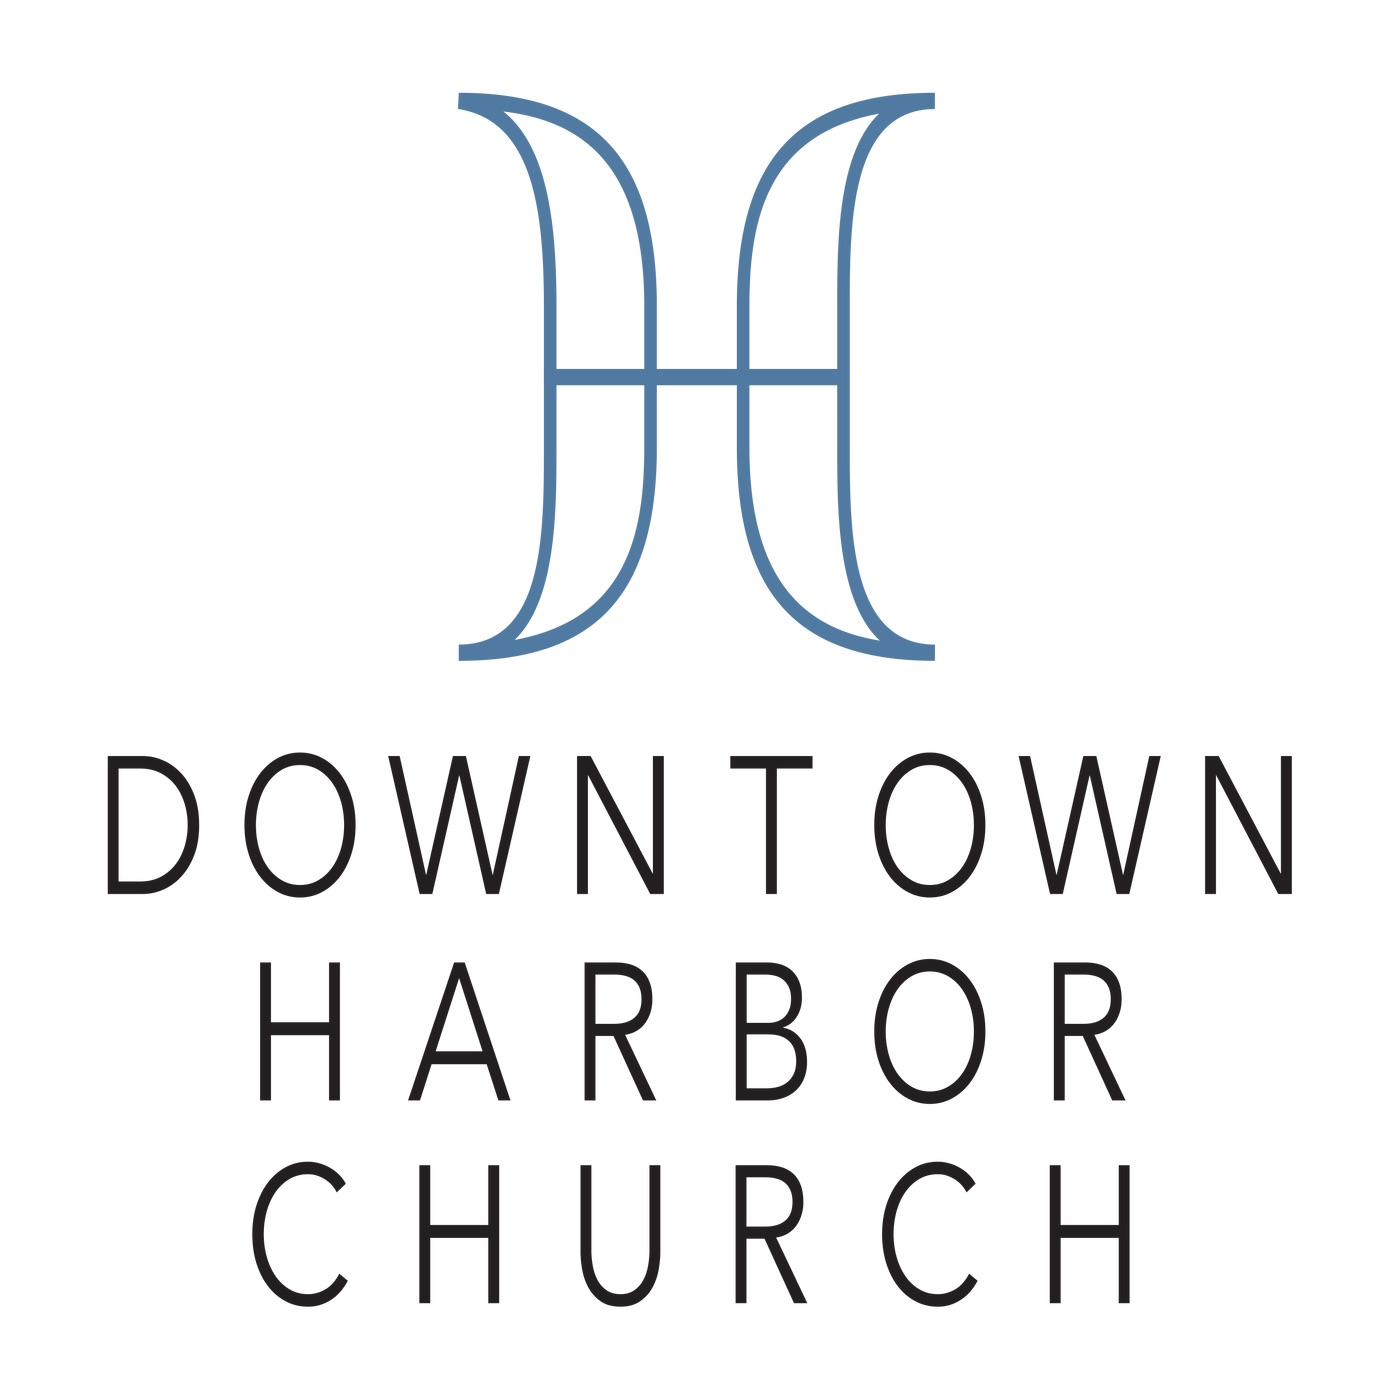 Downtown Harbor Church